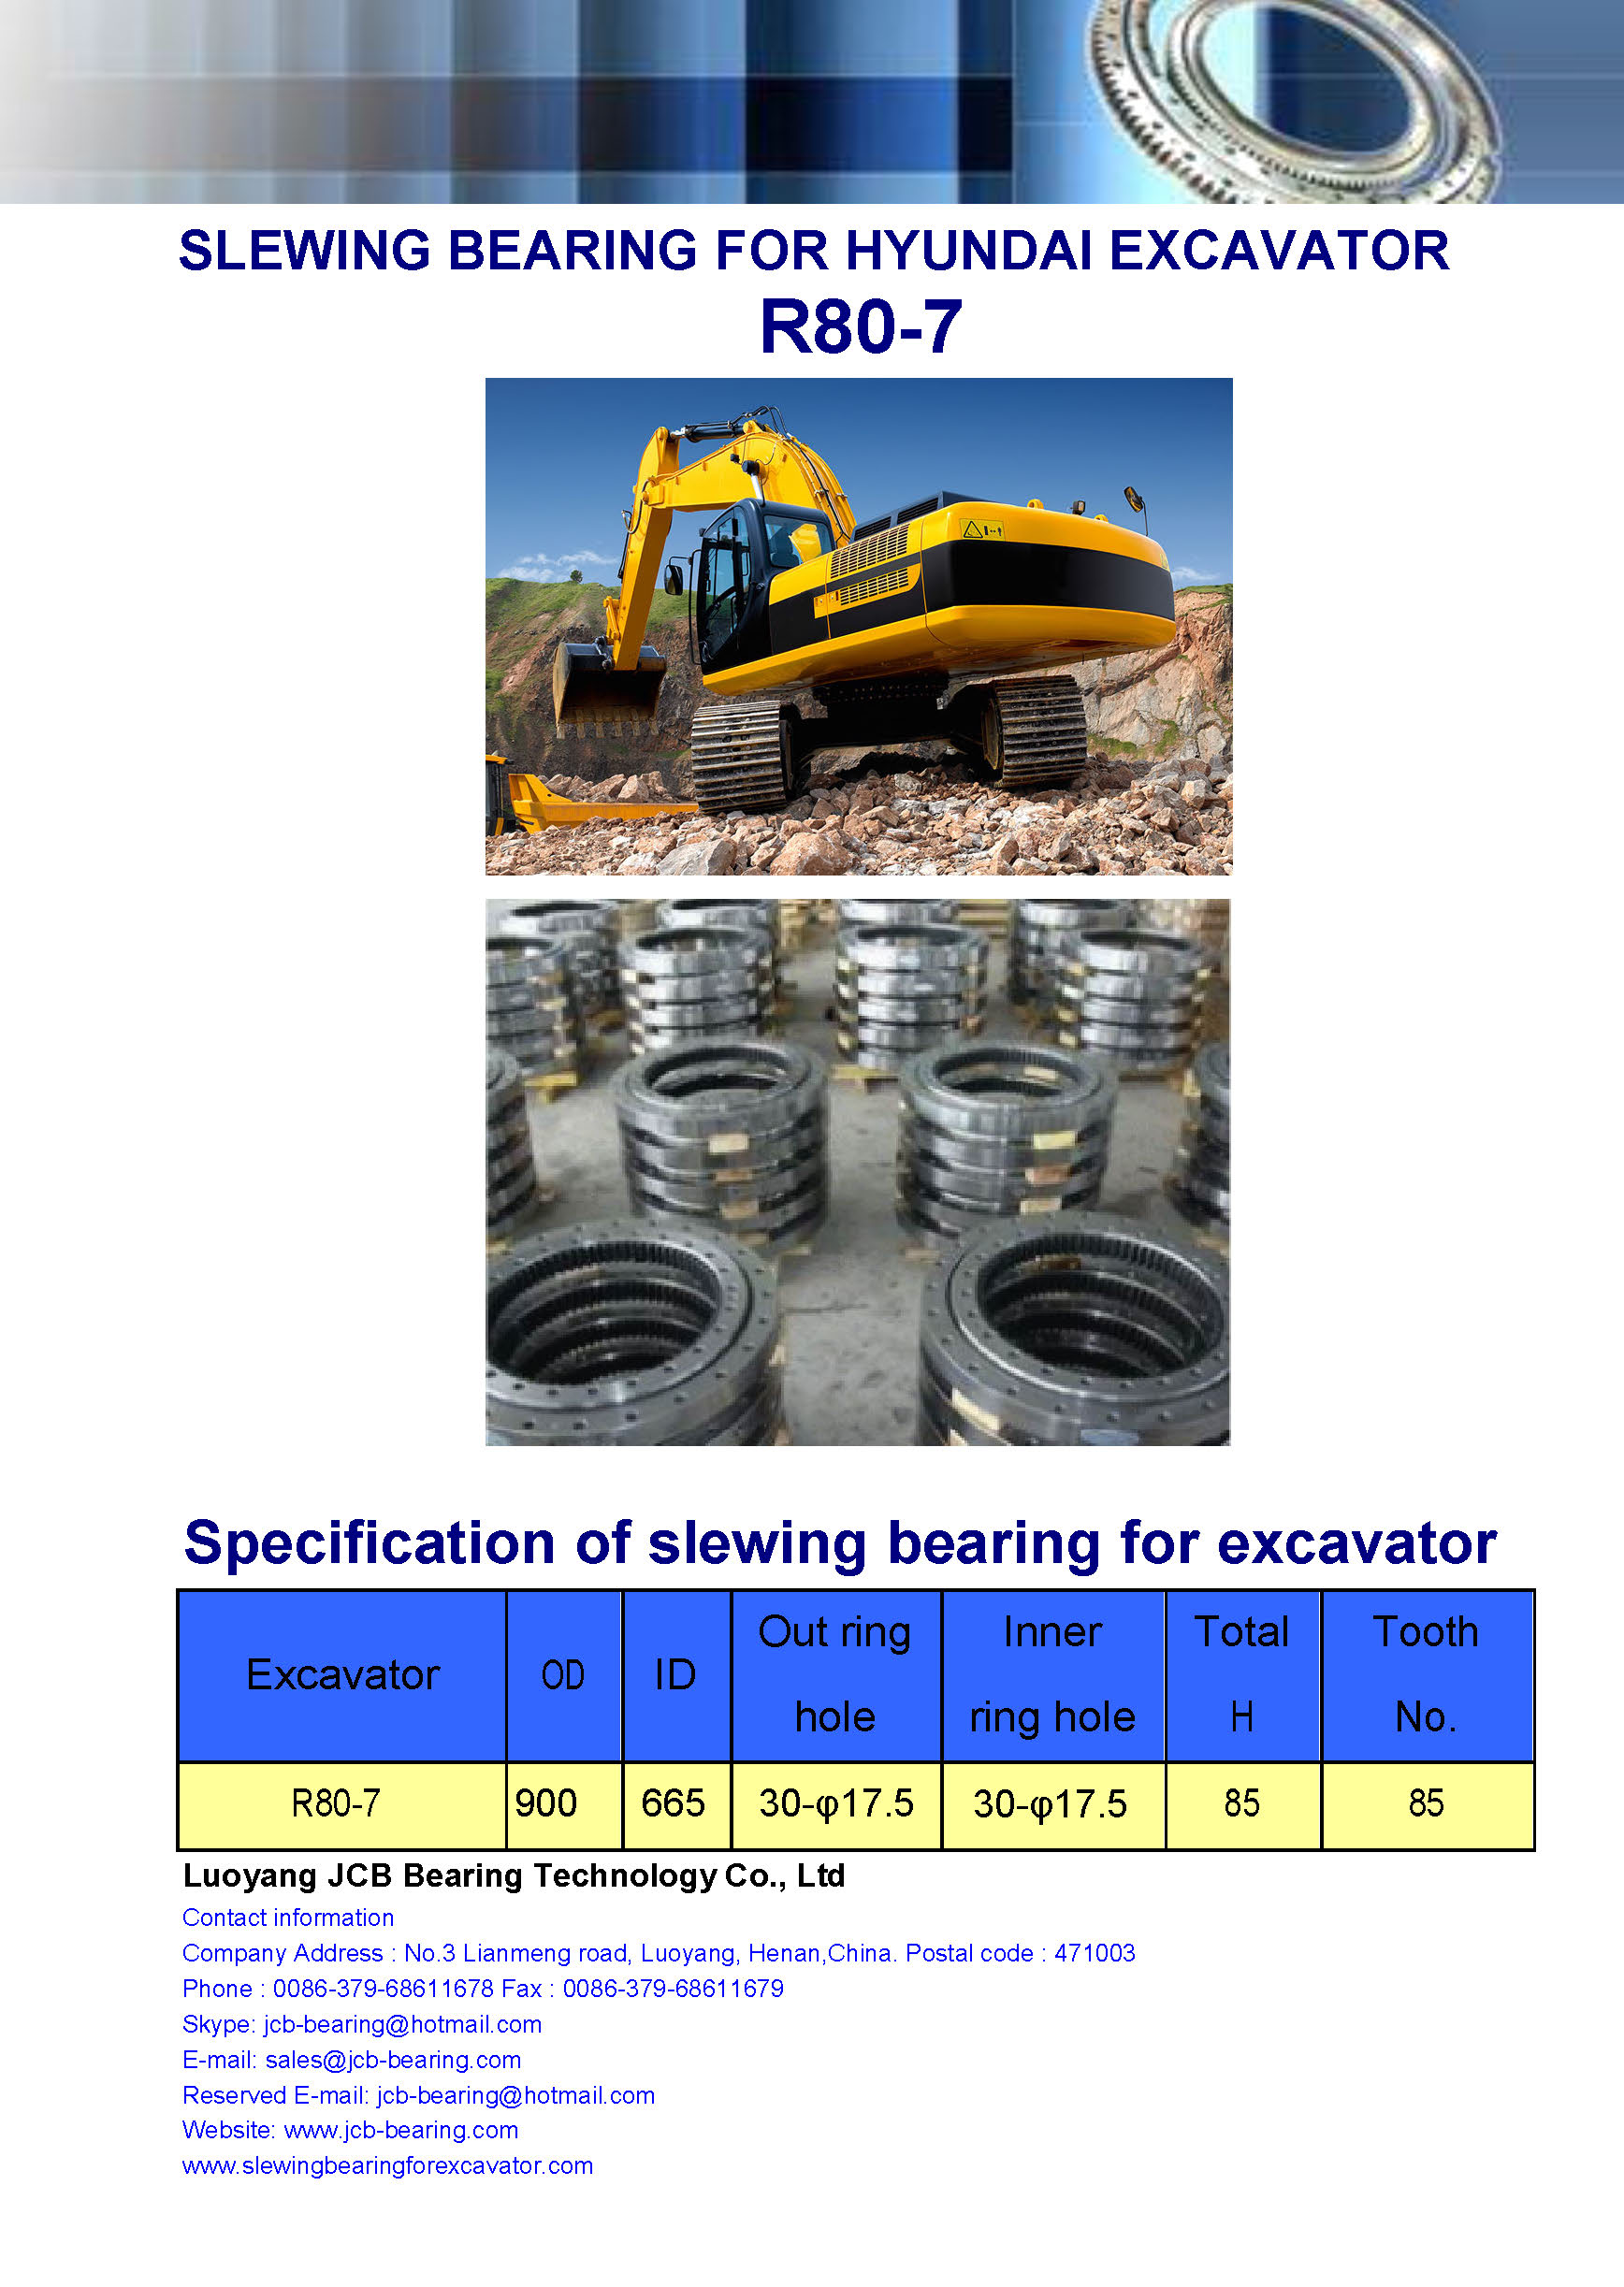 slewing bearing for hyundai excavator R80-7